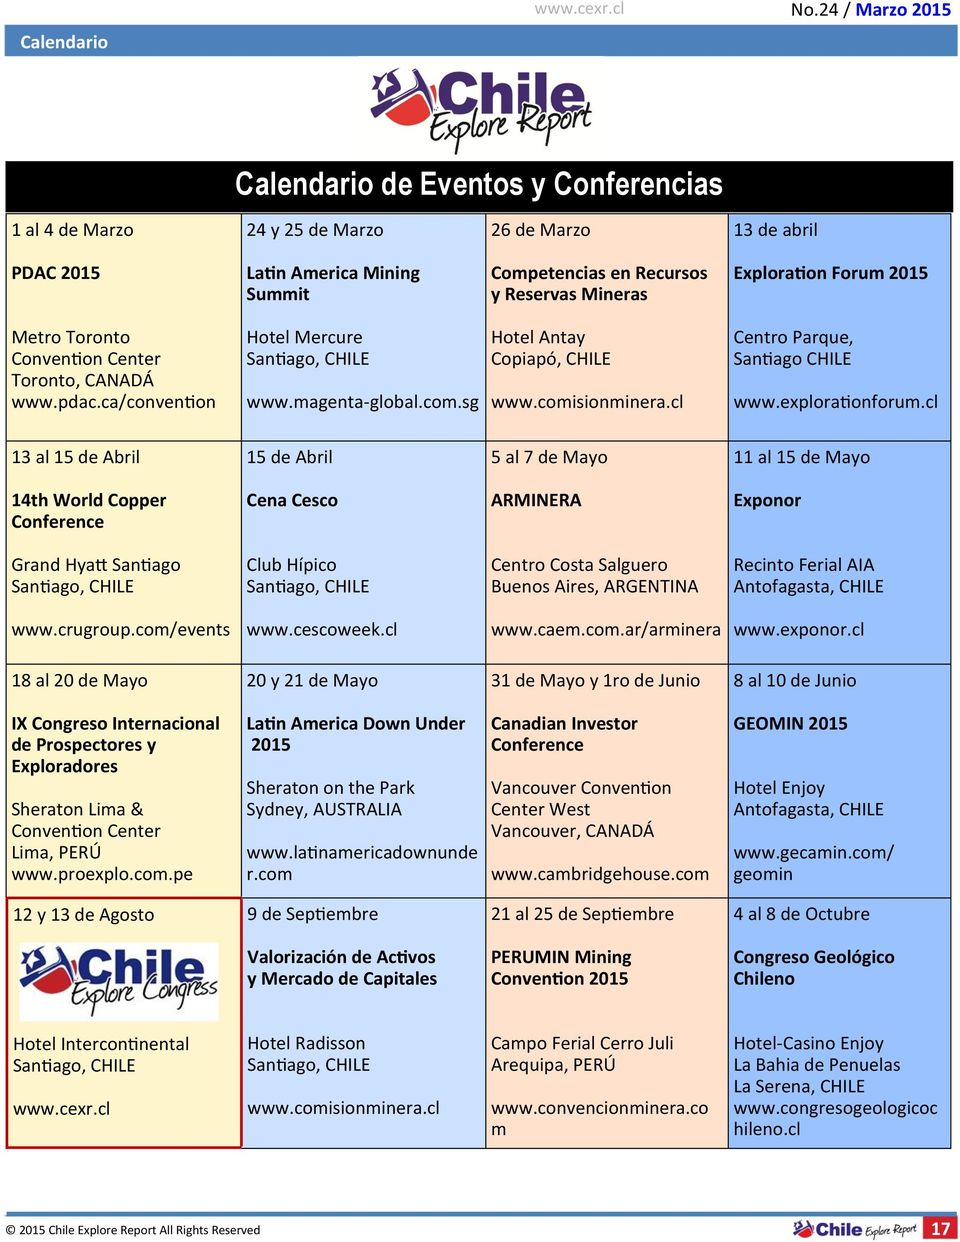 cl Centro Parque, Santiago CHILE www.explorationforum.